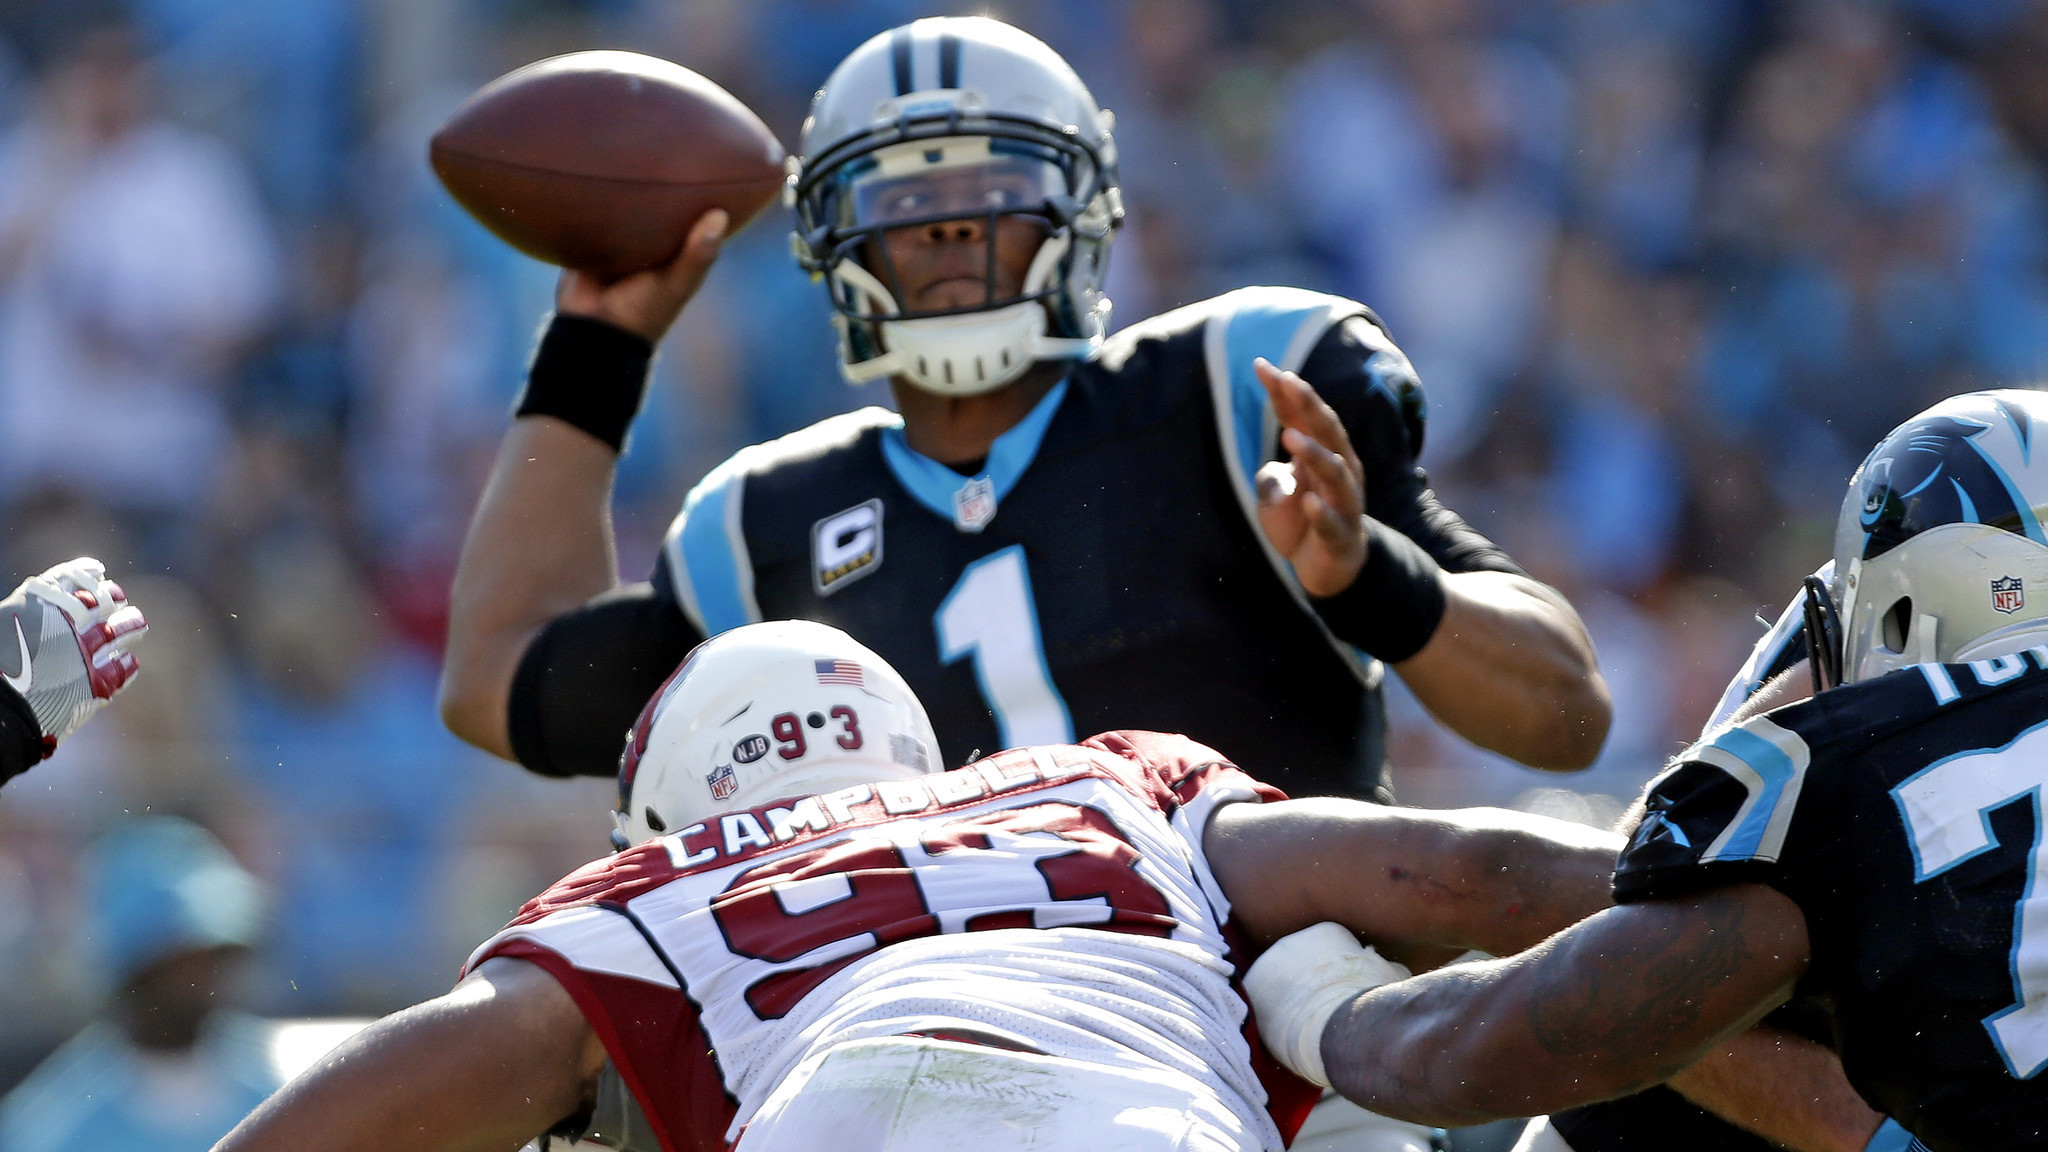 NFL: Cam Newton has shoulder surgery, expected to be ready for training camp